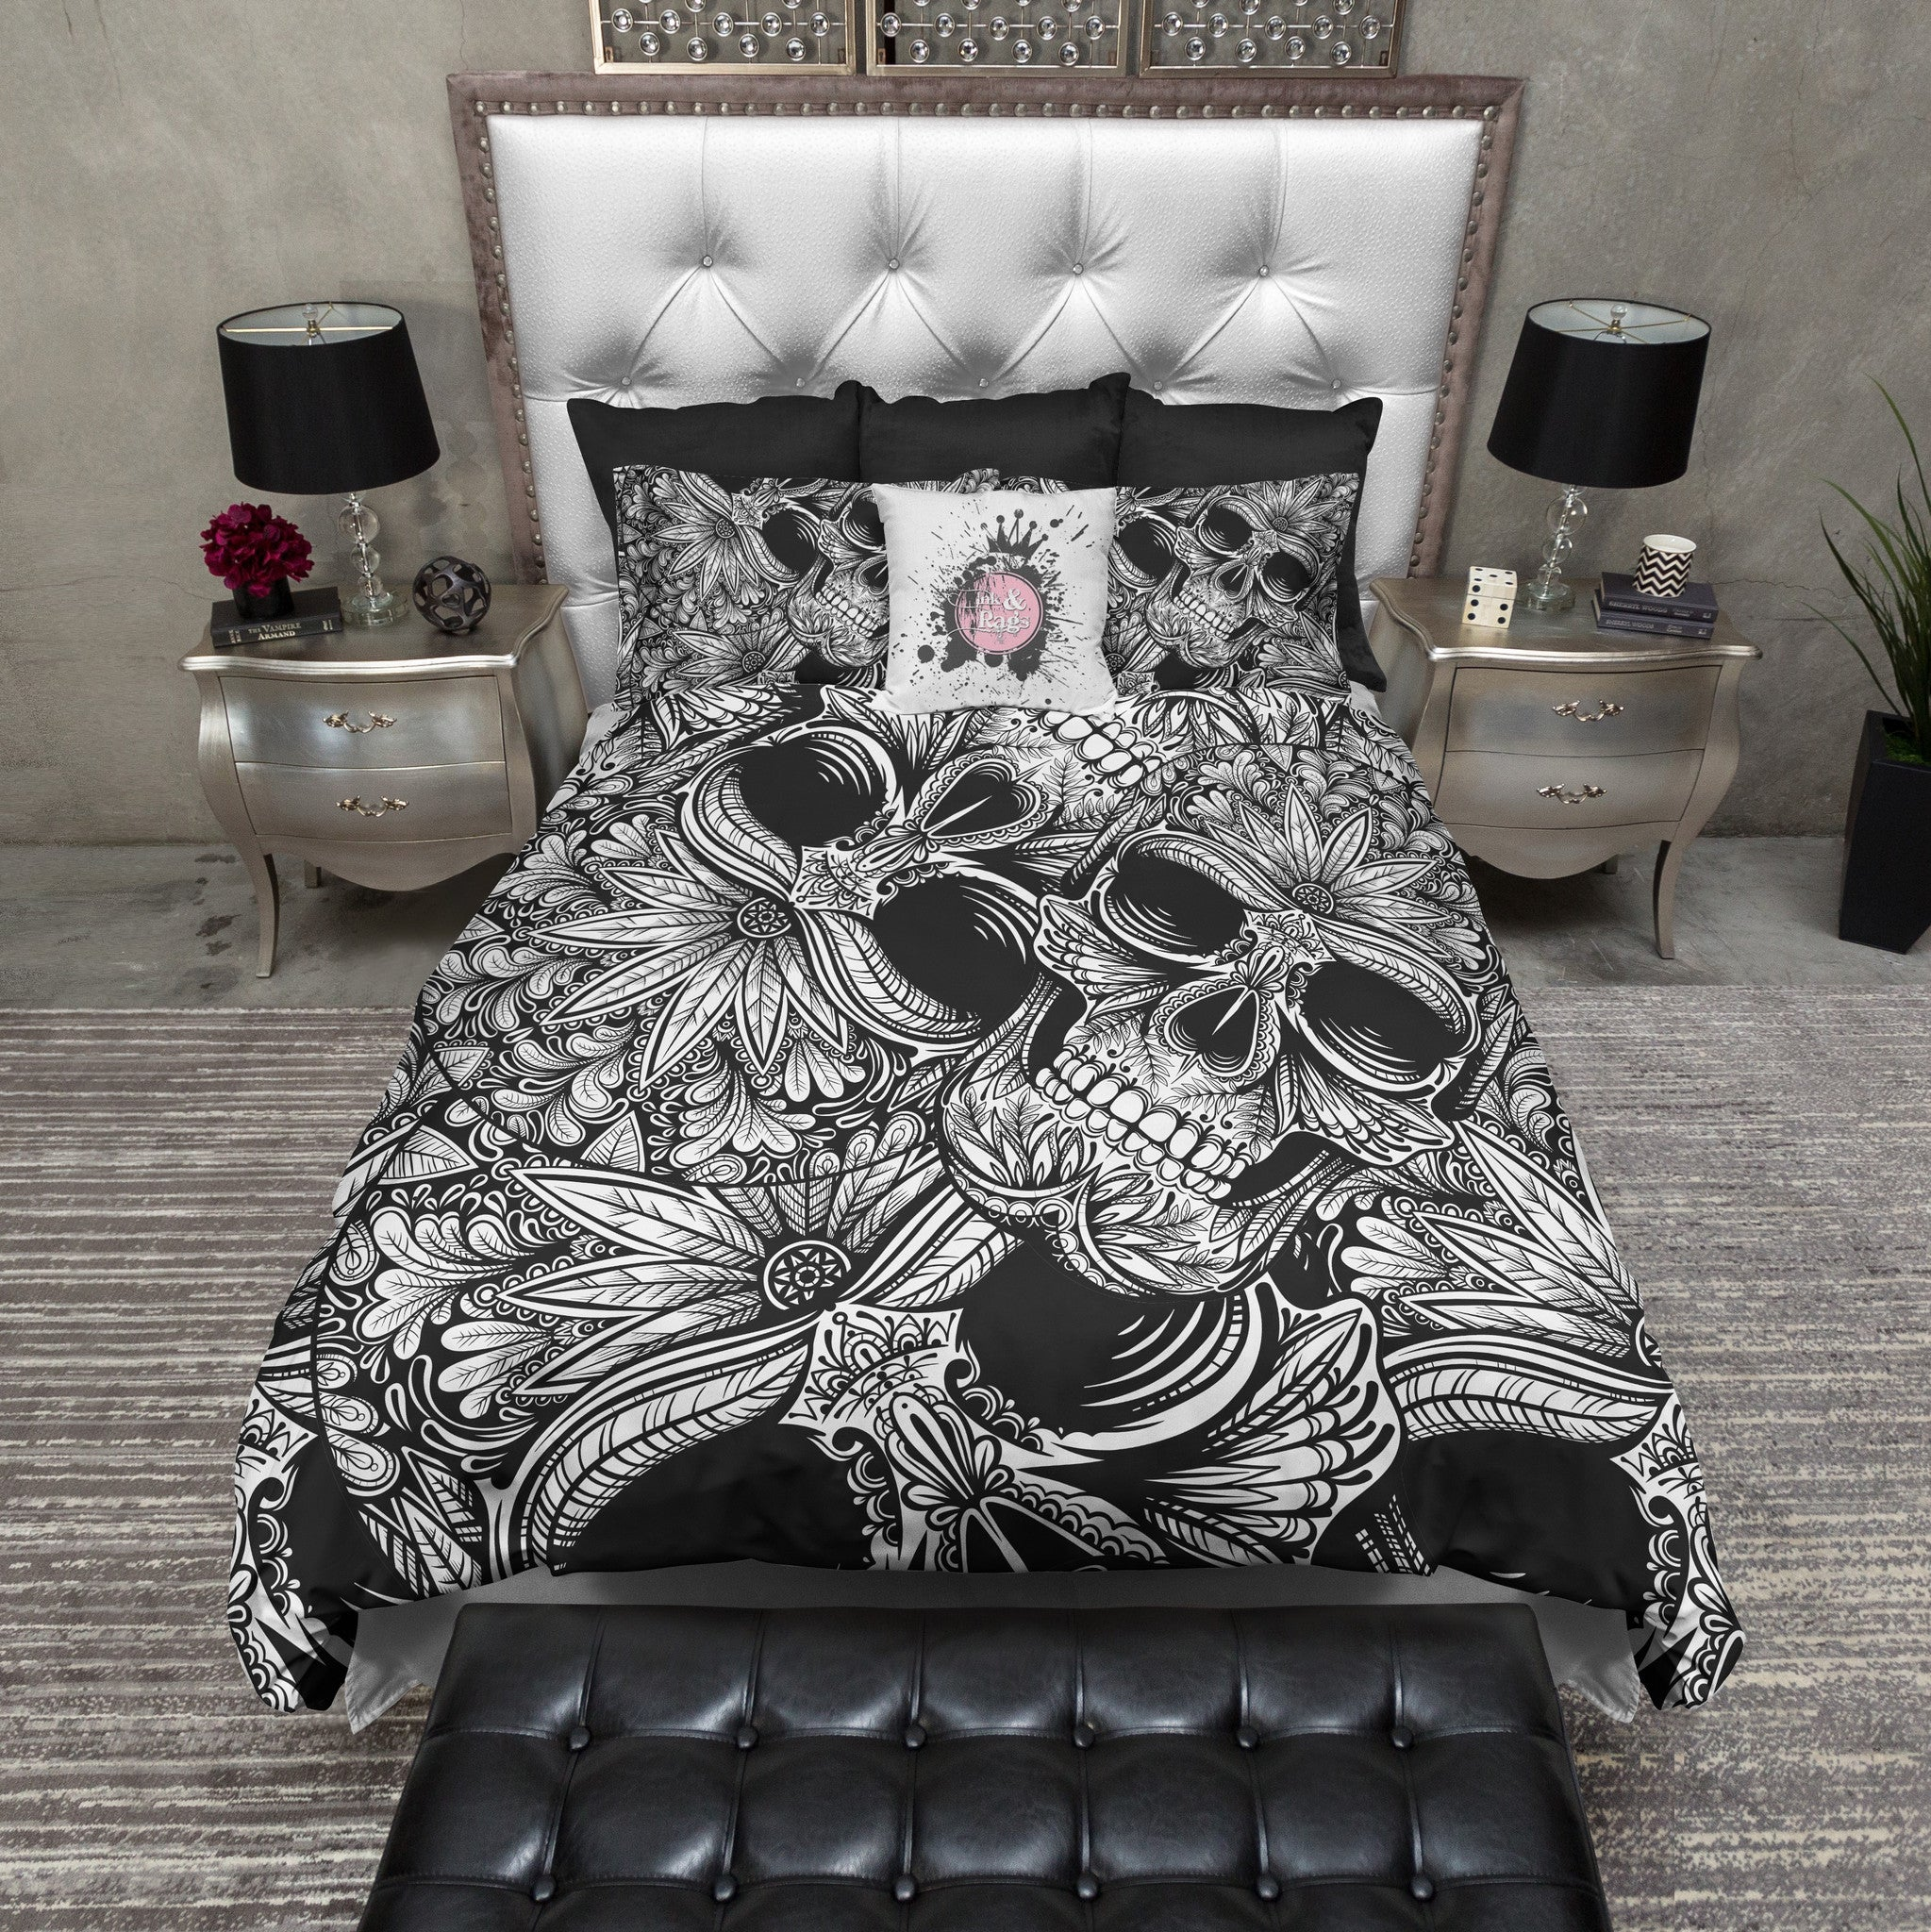 Tribal Black and White Sugar Skull Bedding - Ink and Rags